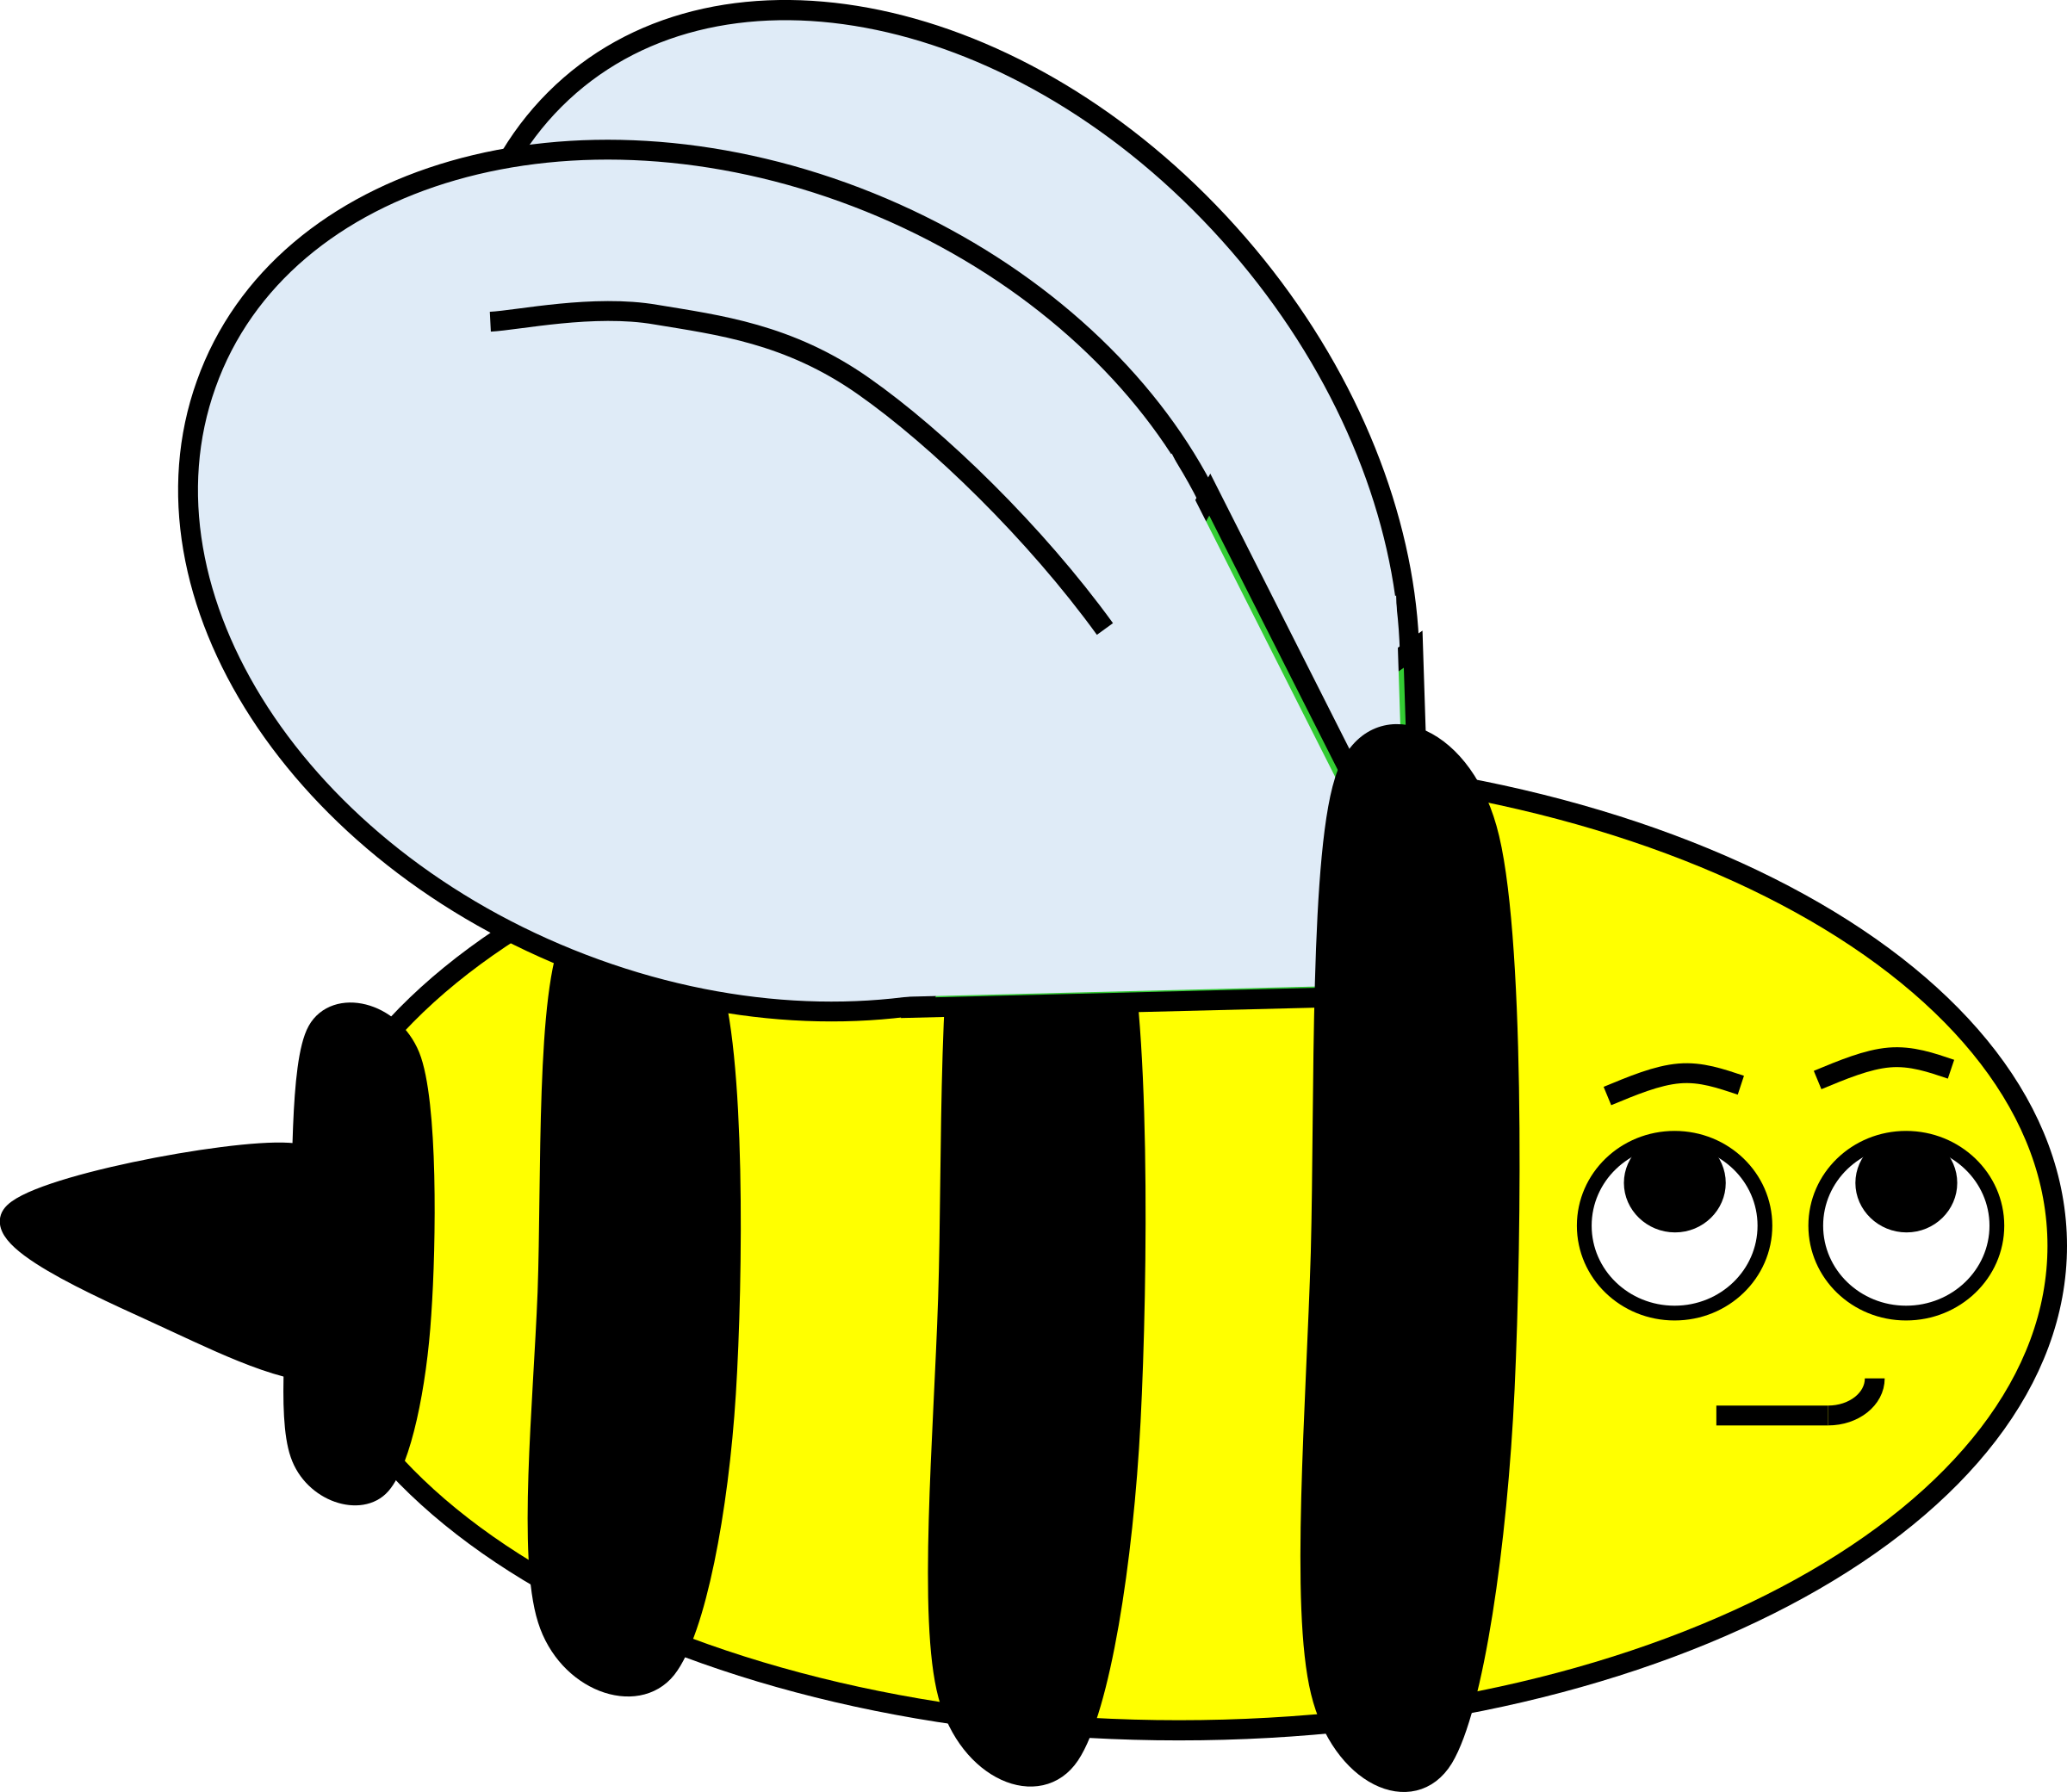 clipart library download Small bee free on. Bumble clipart